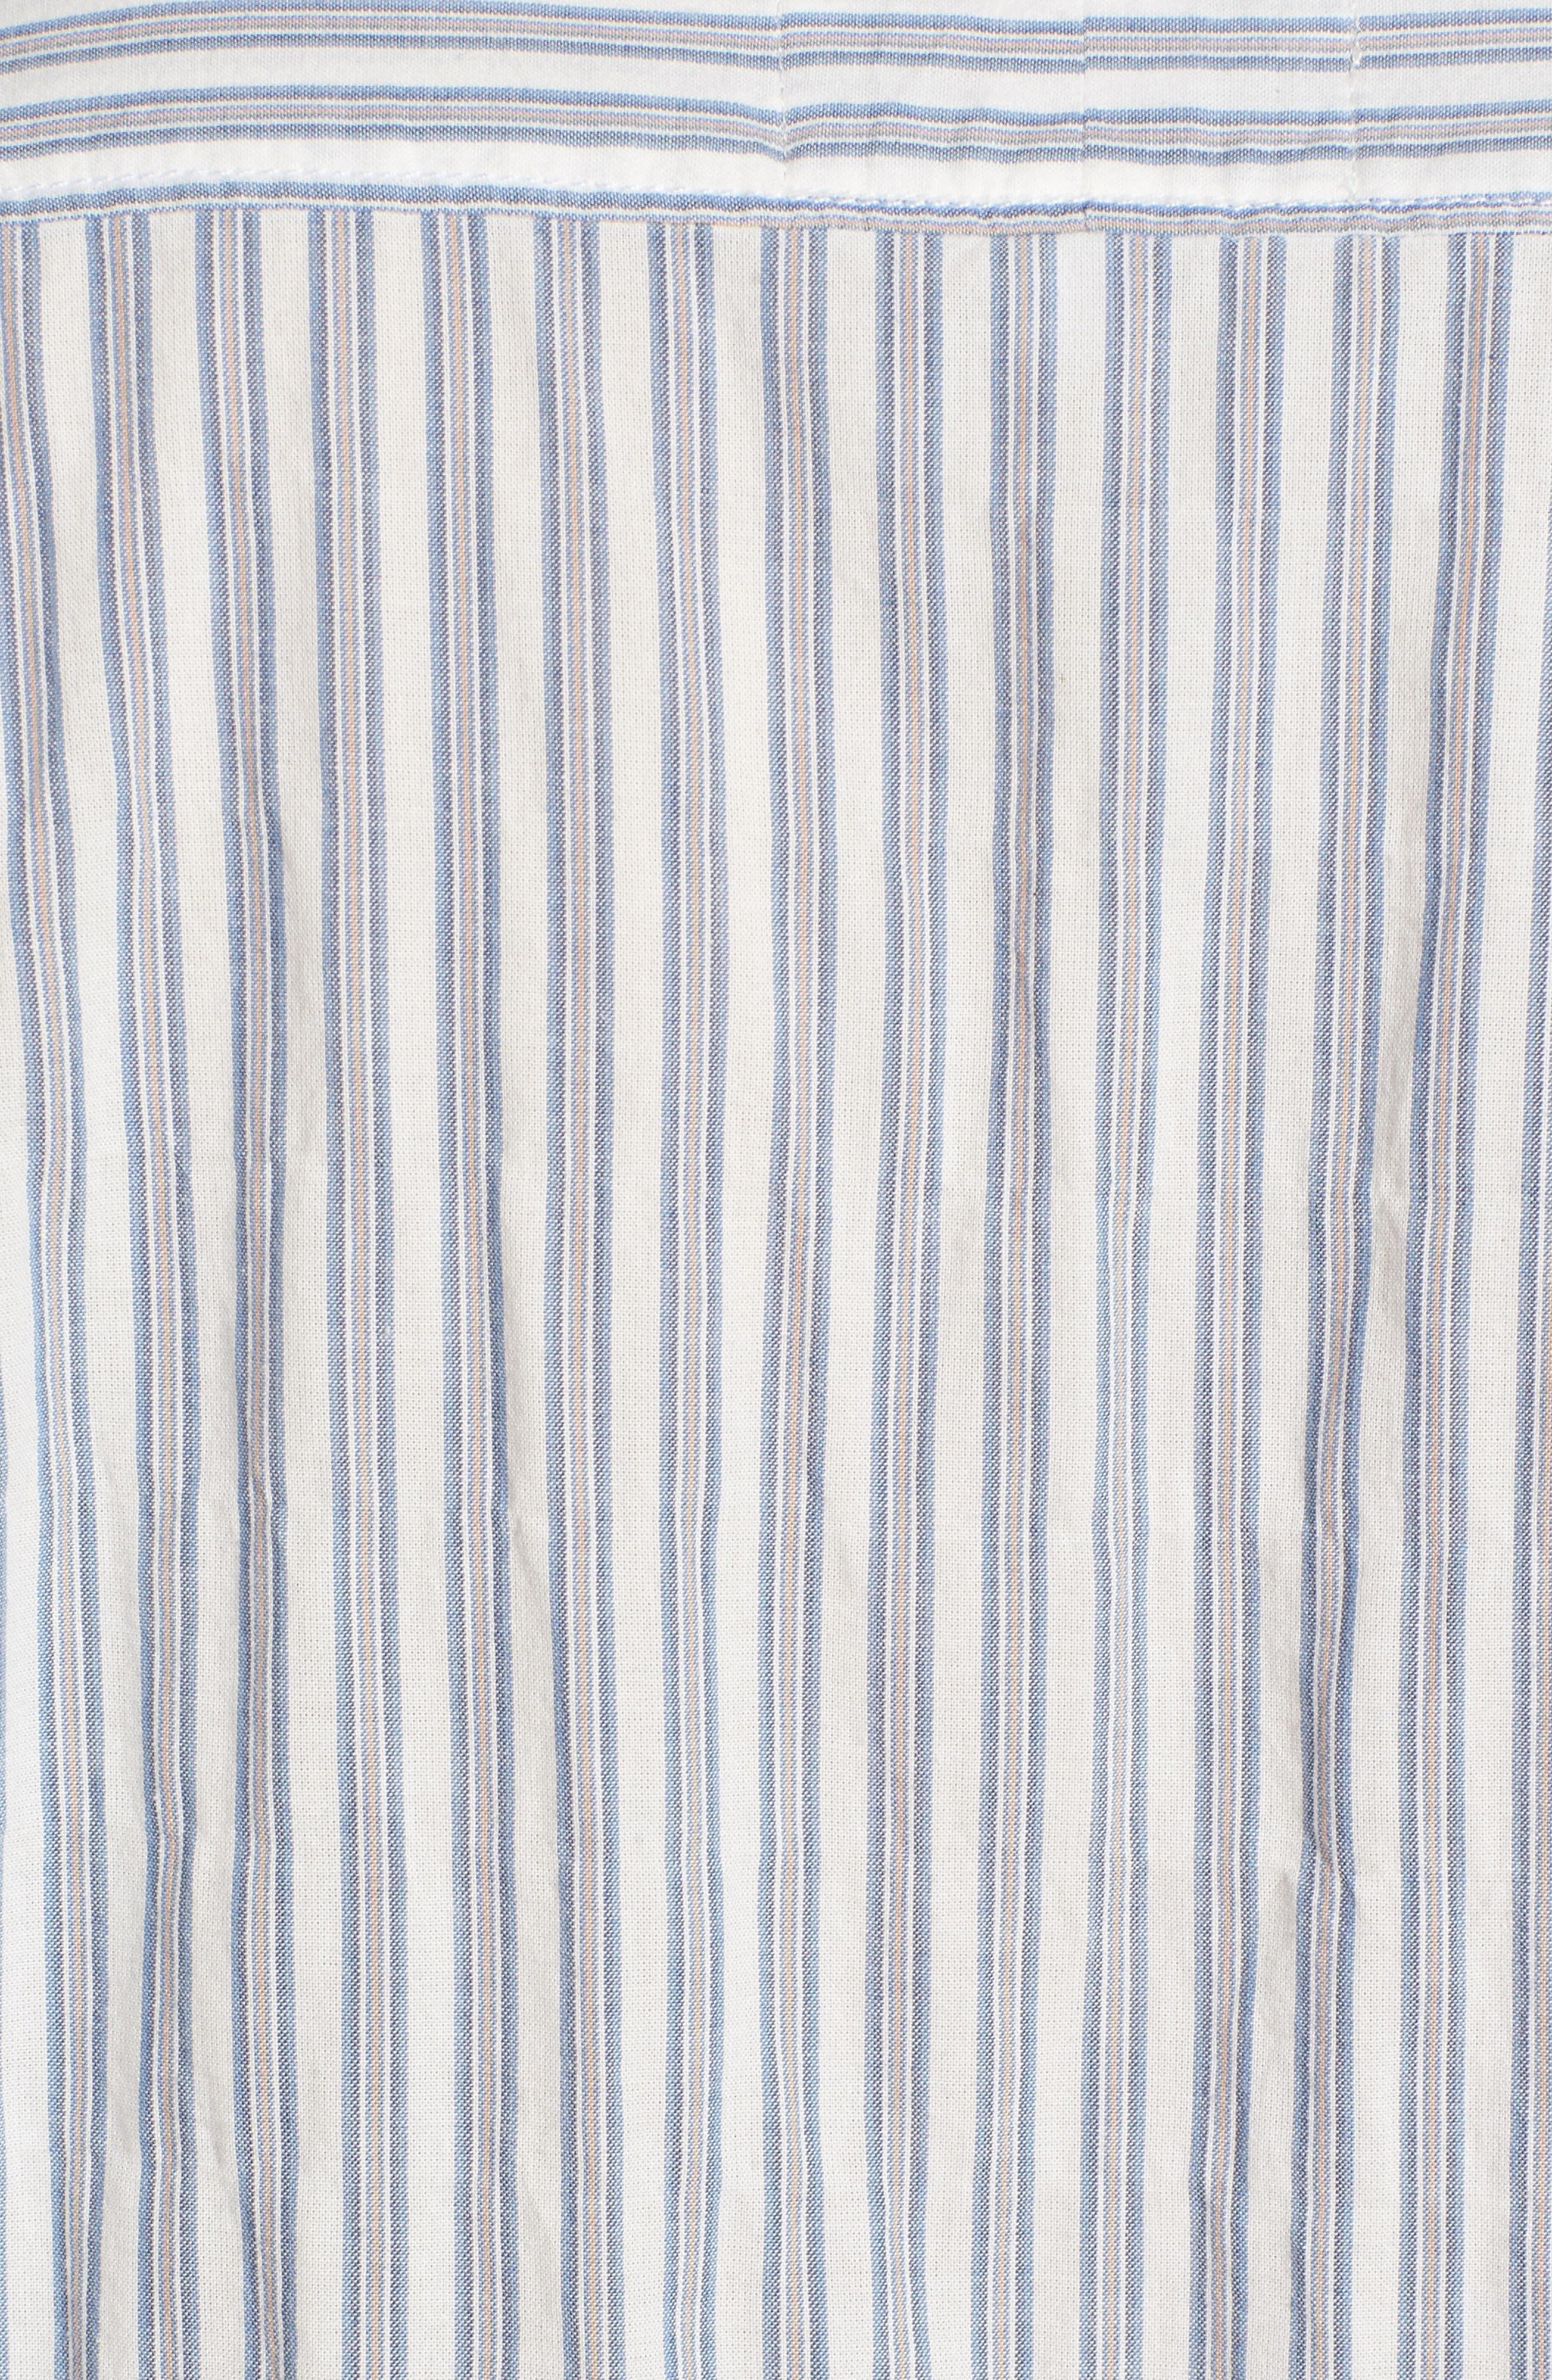 The Rosie Shirt,                             Alternate thumbnail 6, color,                             Multicolor Stripe